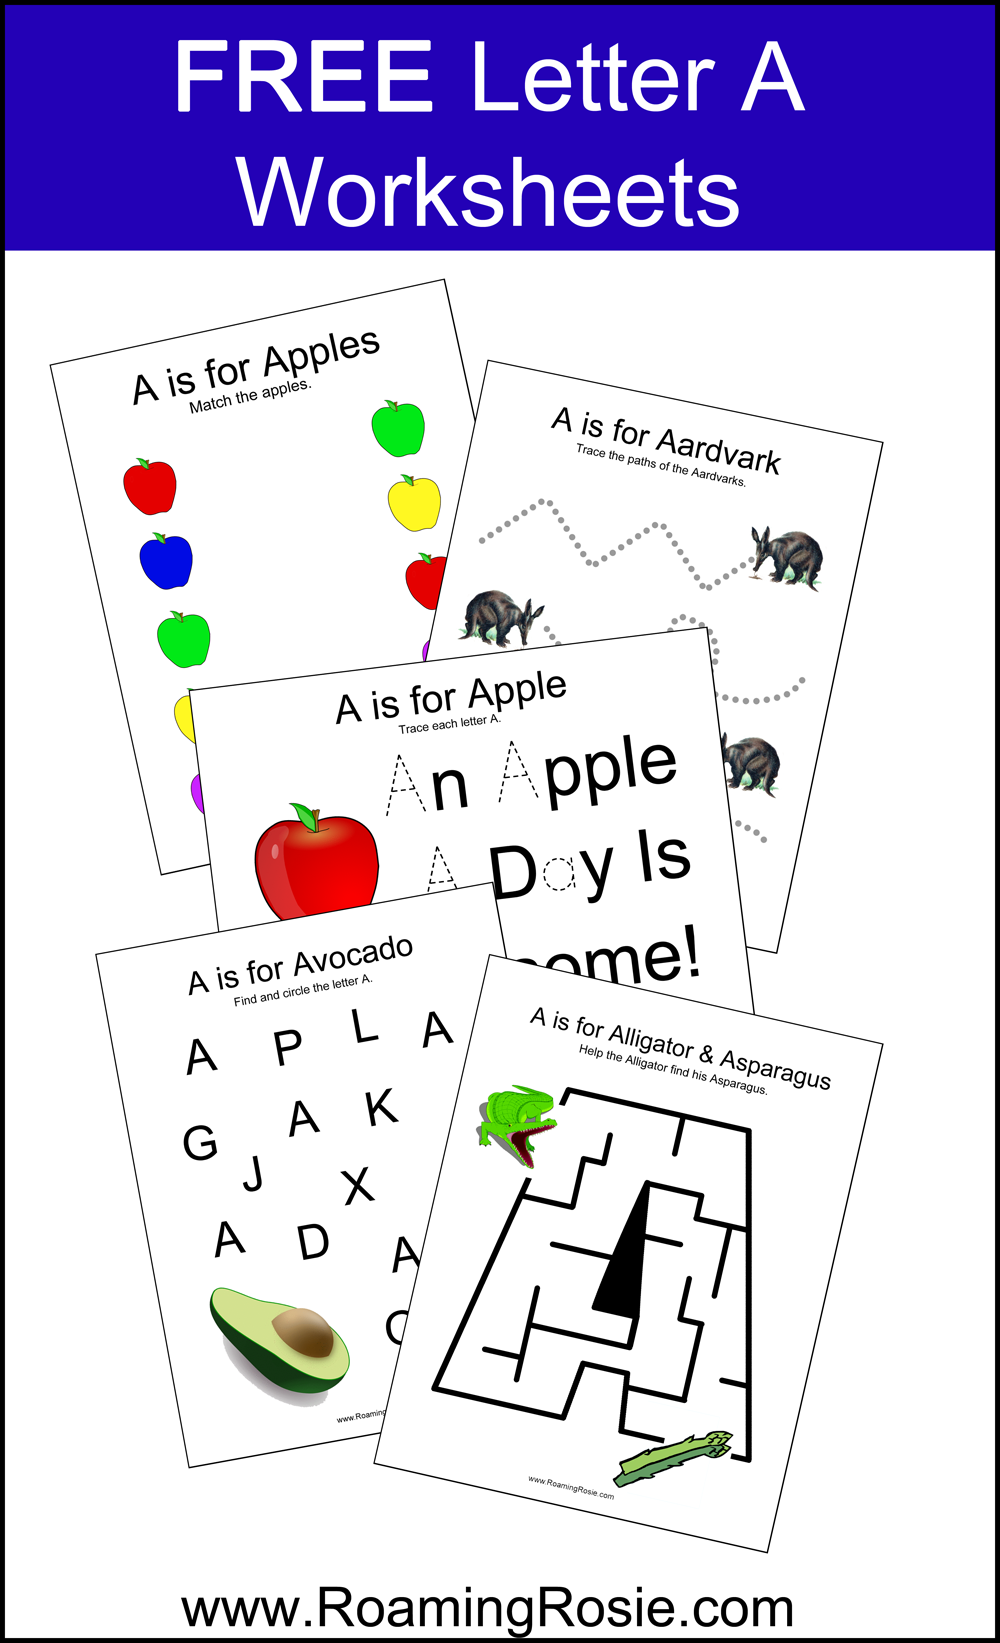 Letter A: Free Alphabet Worksheets For Kids Roaming Rosie